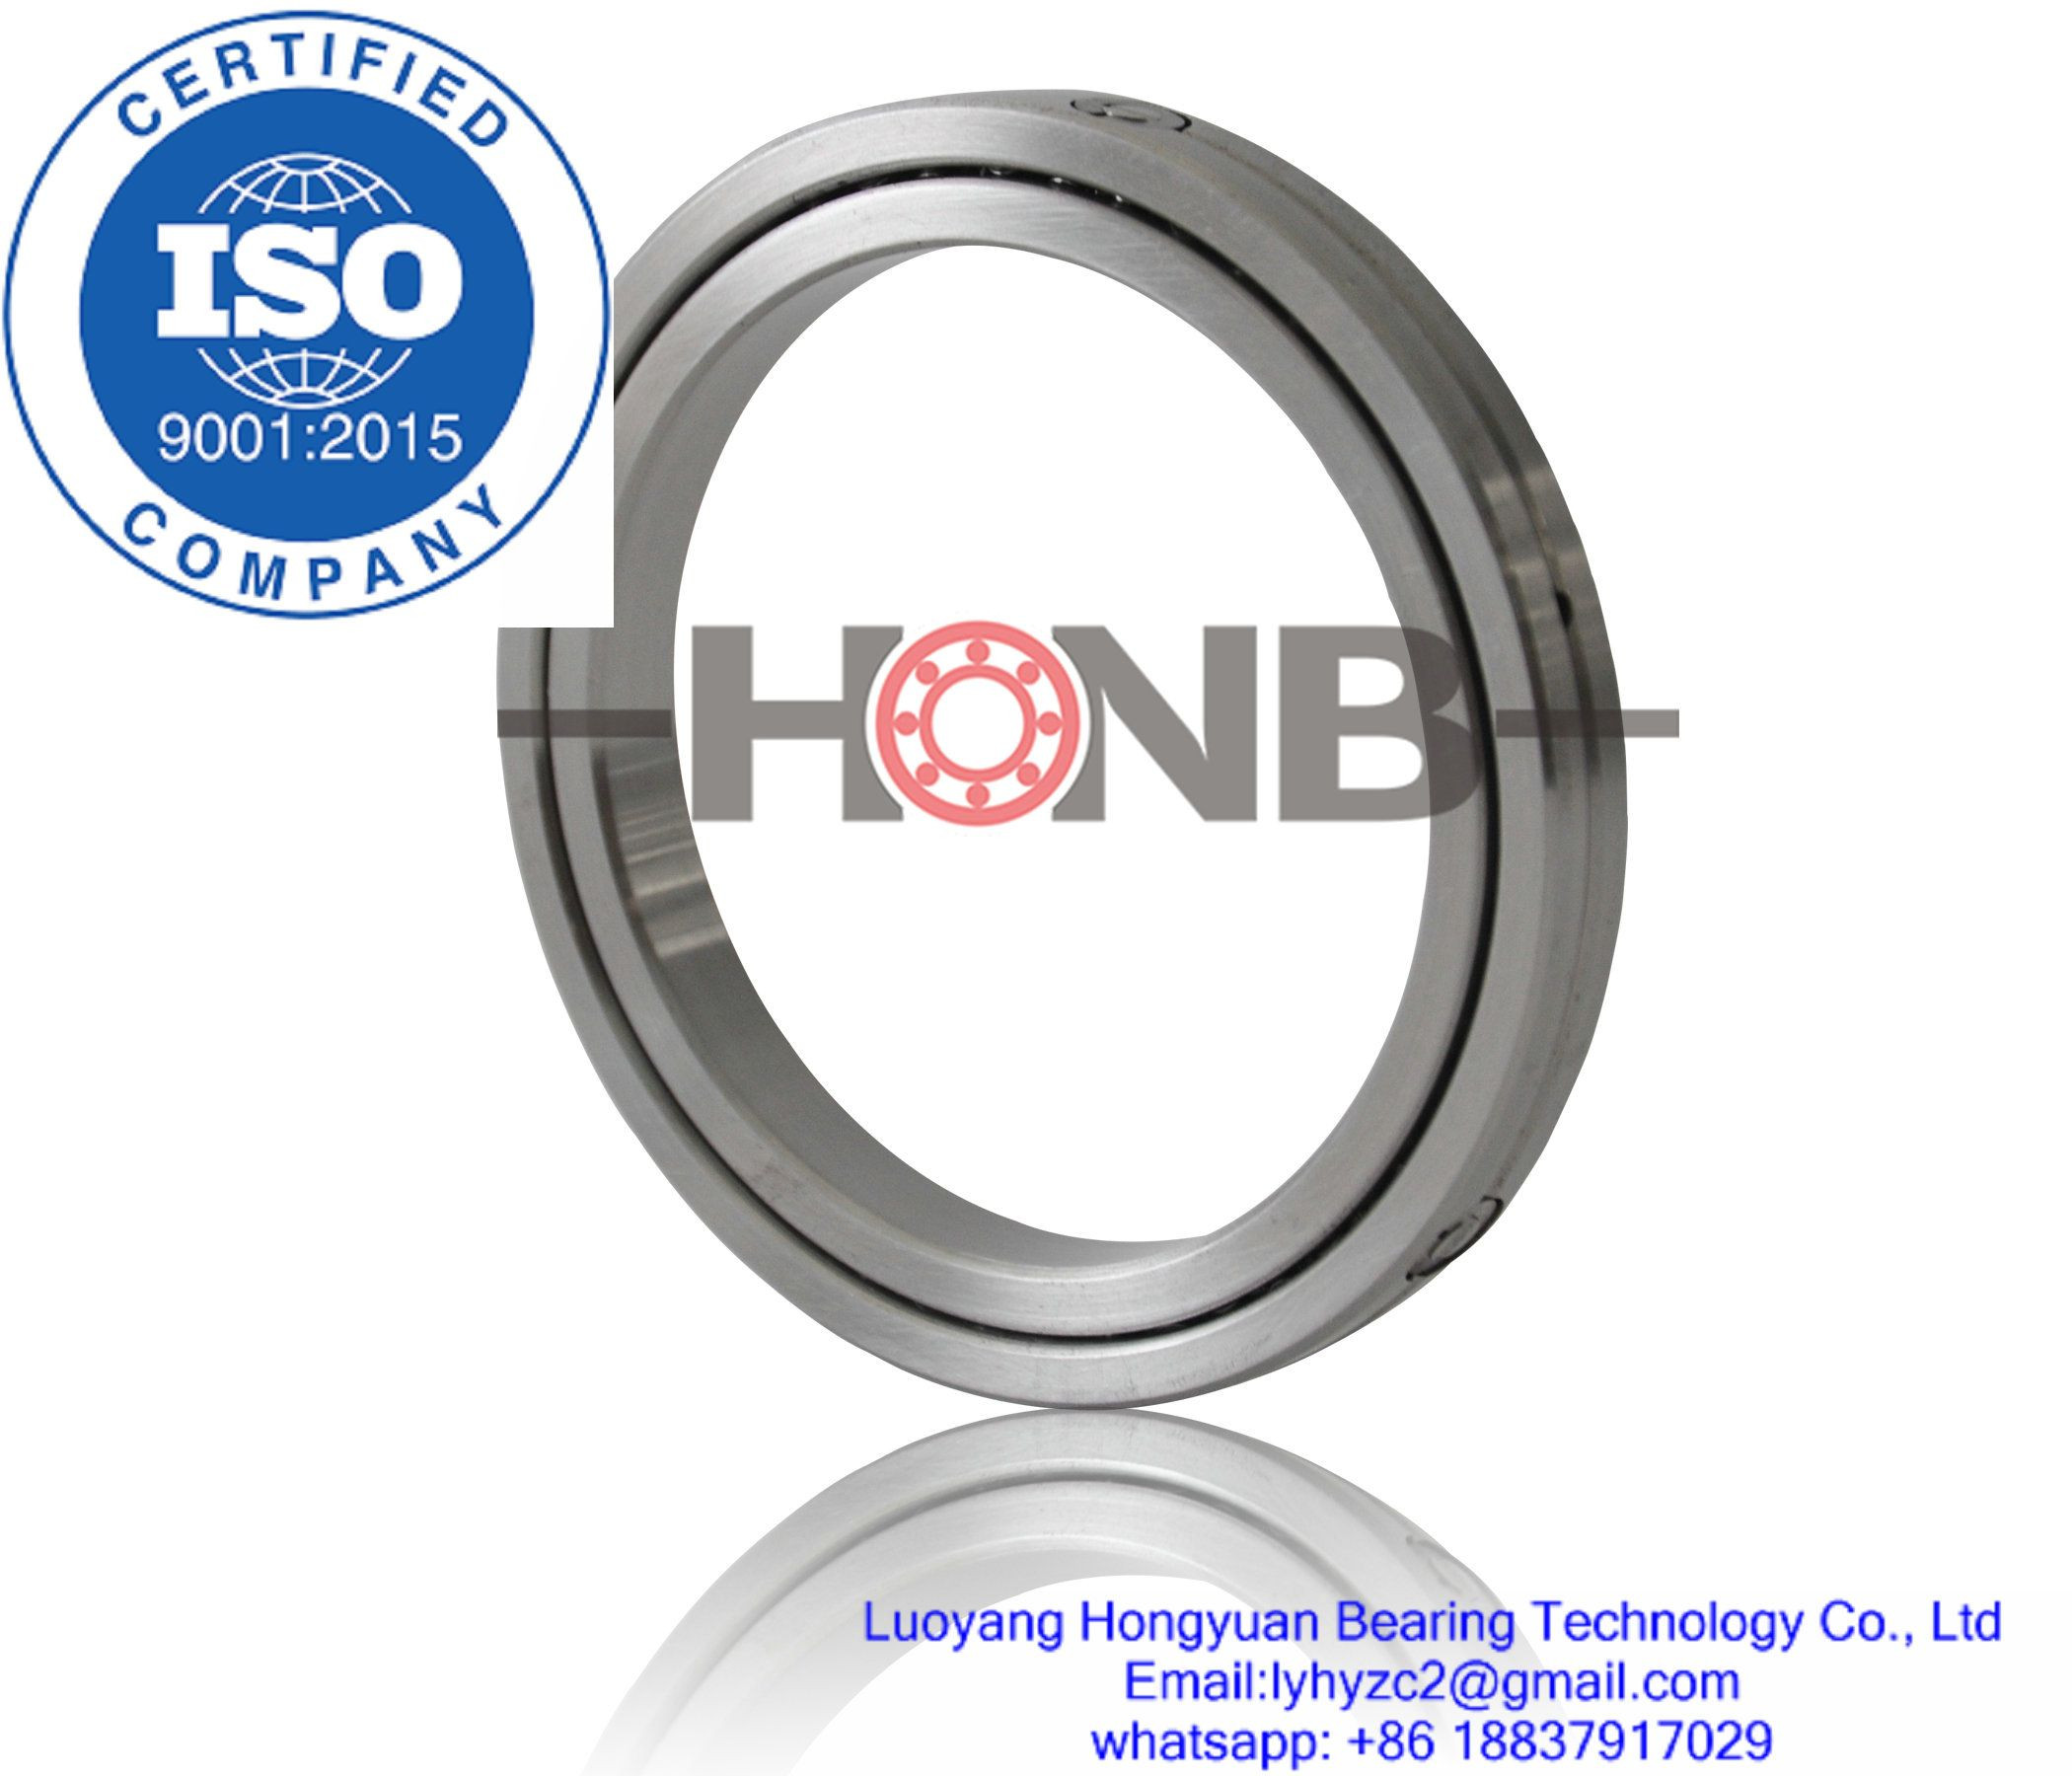 Sx011880 High Precision China Crossed Roller Bearing for Robot Application.